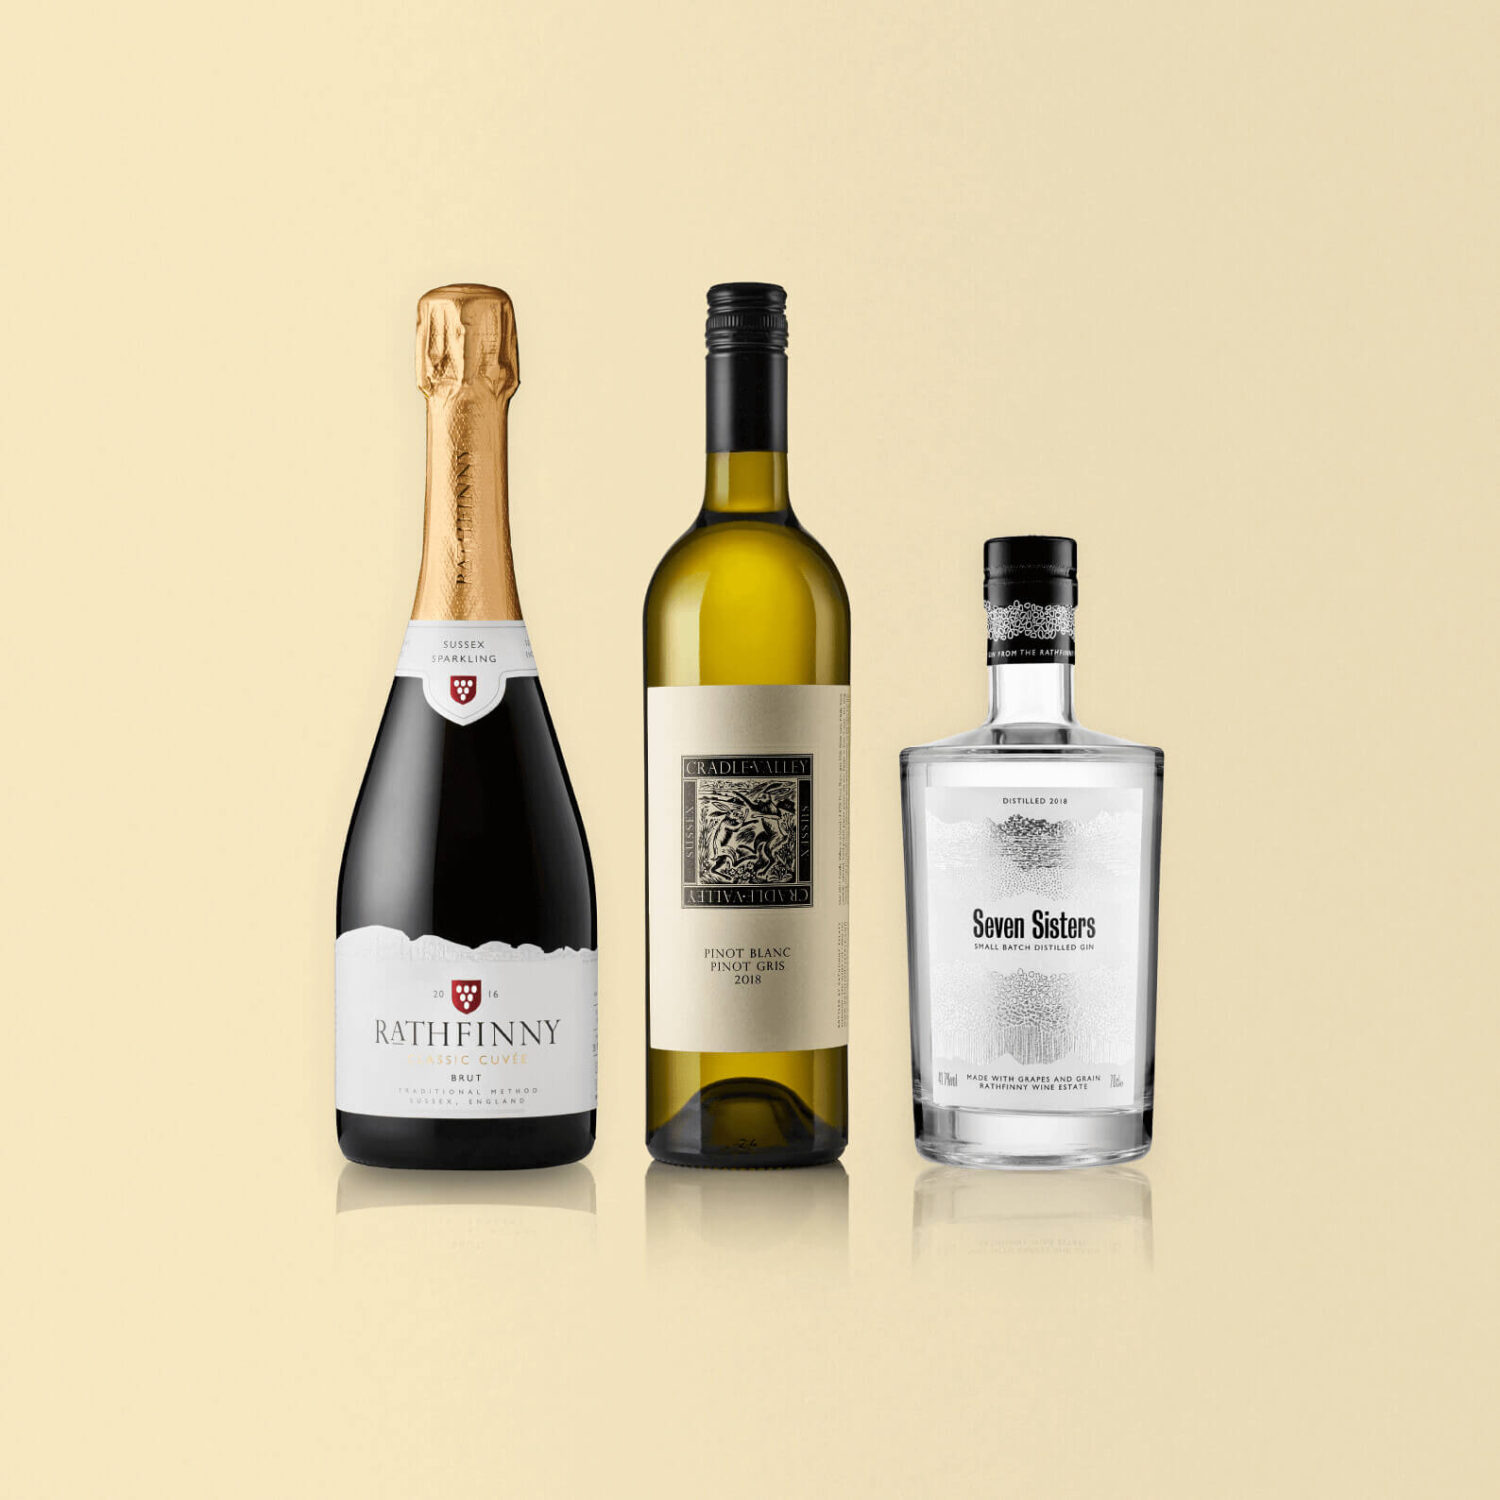 Sussex wines and spirits